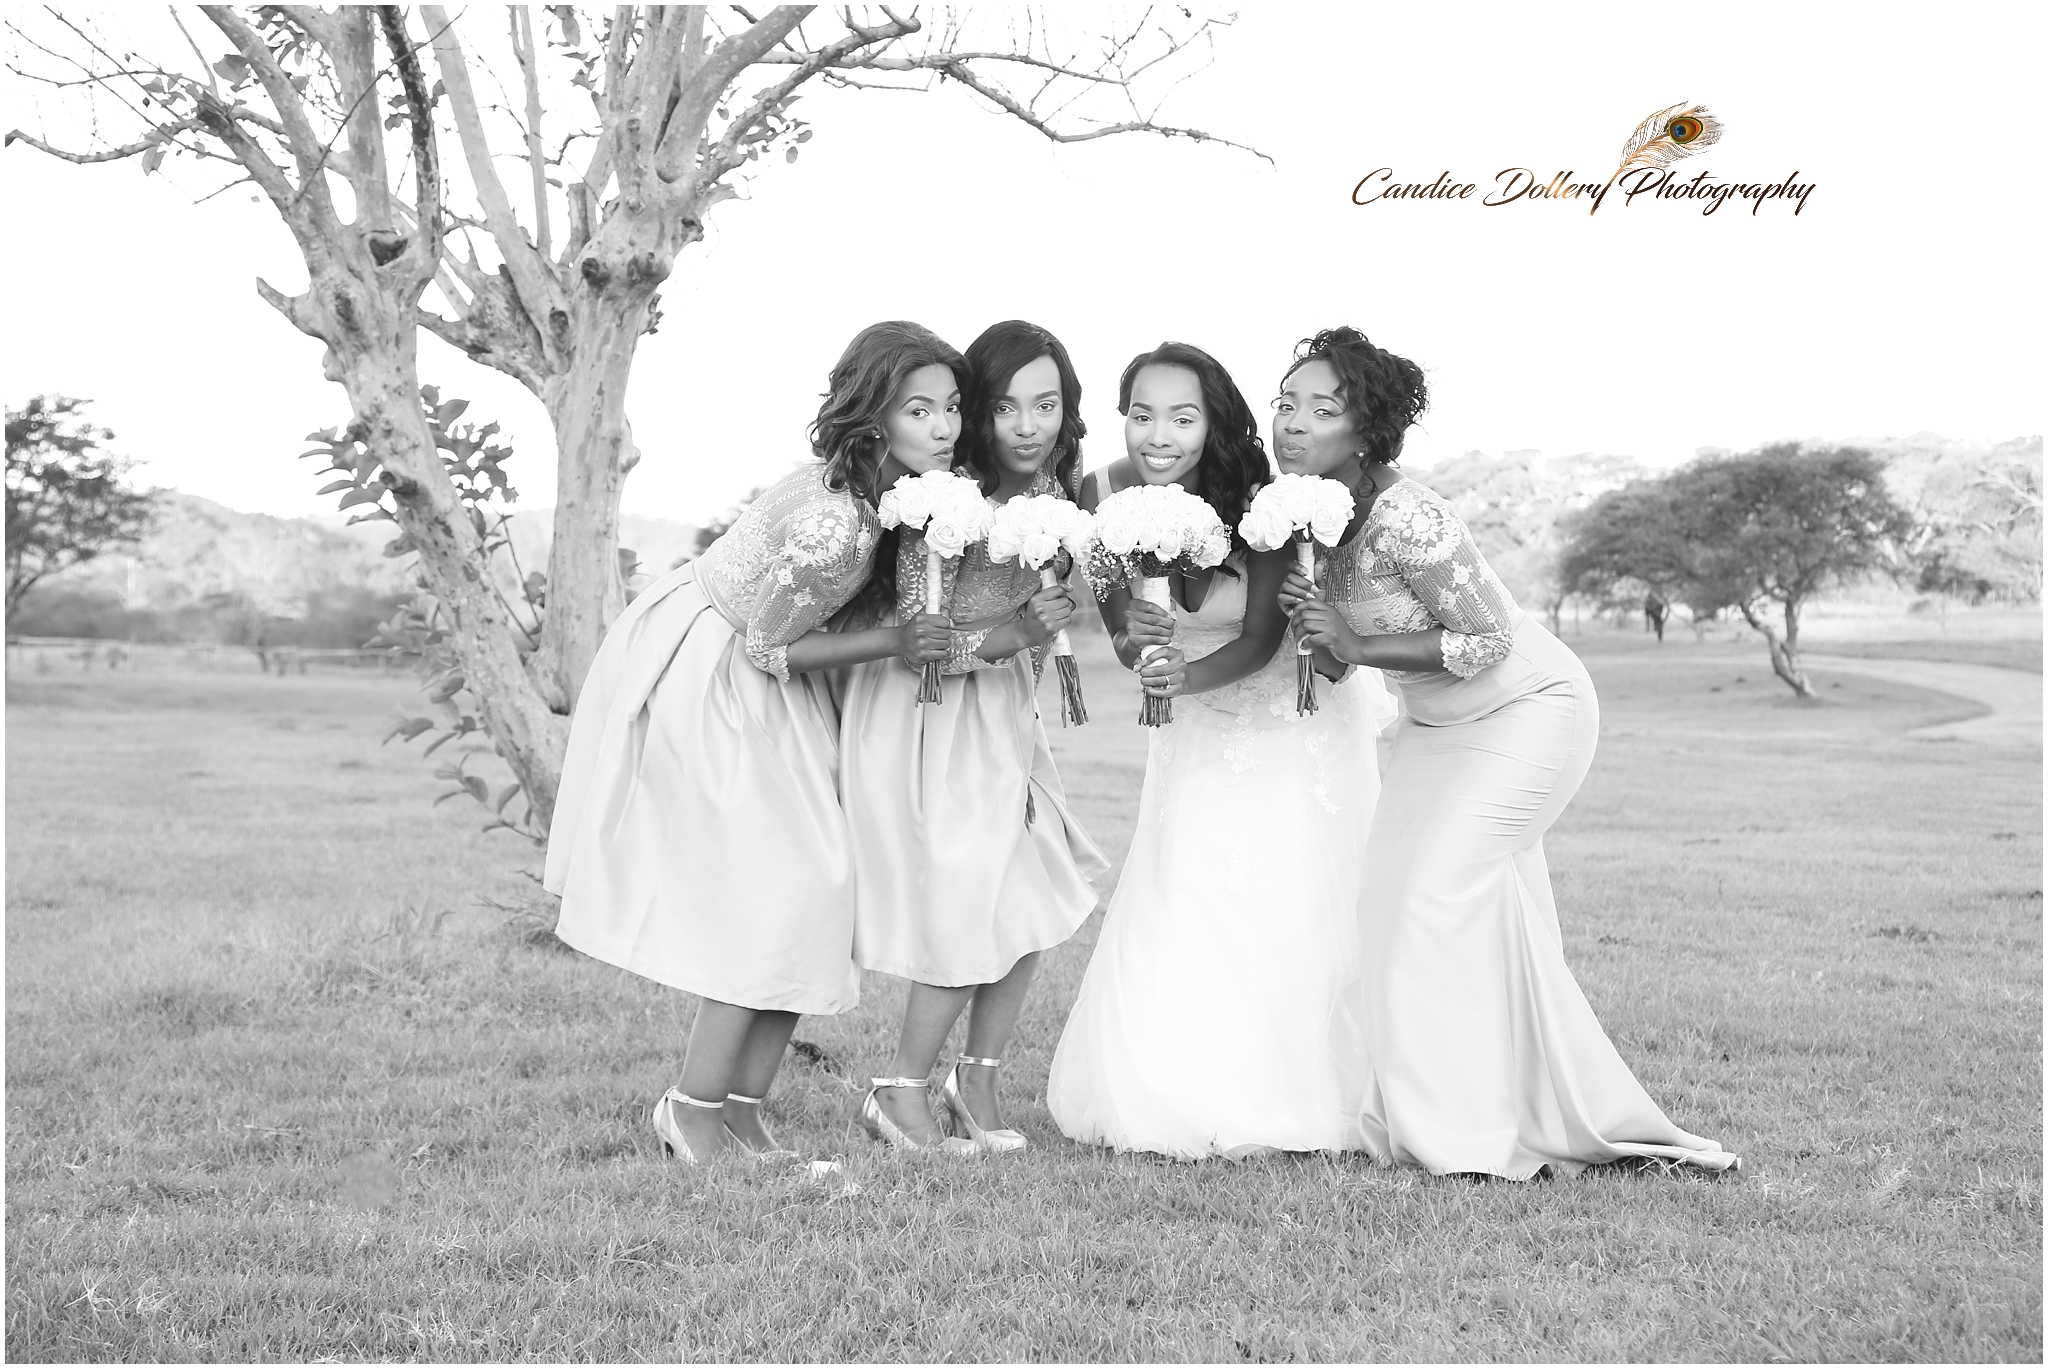 lelethu-kgotsos-wedding-candice-dollery-photography_1683